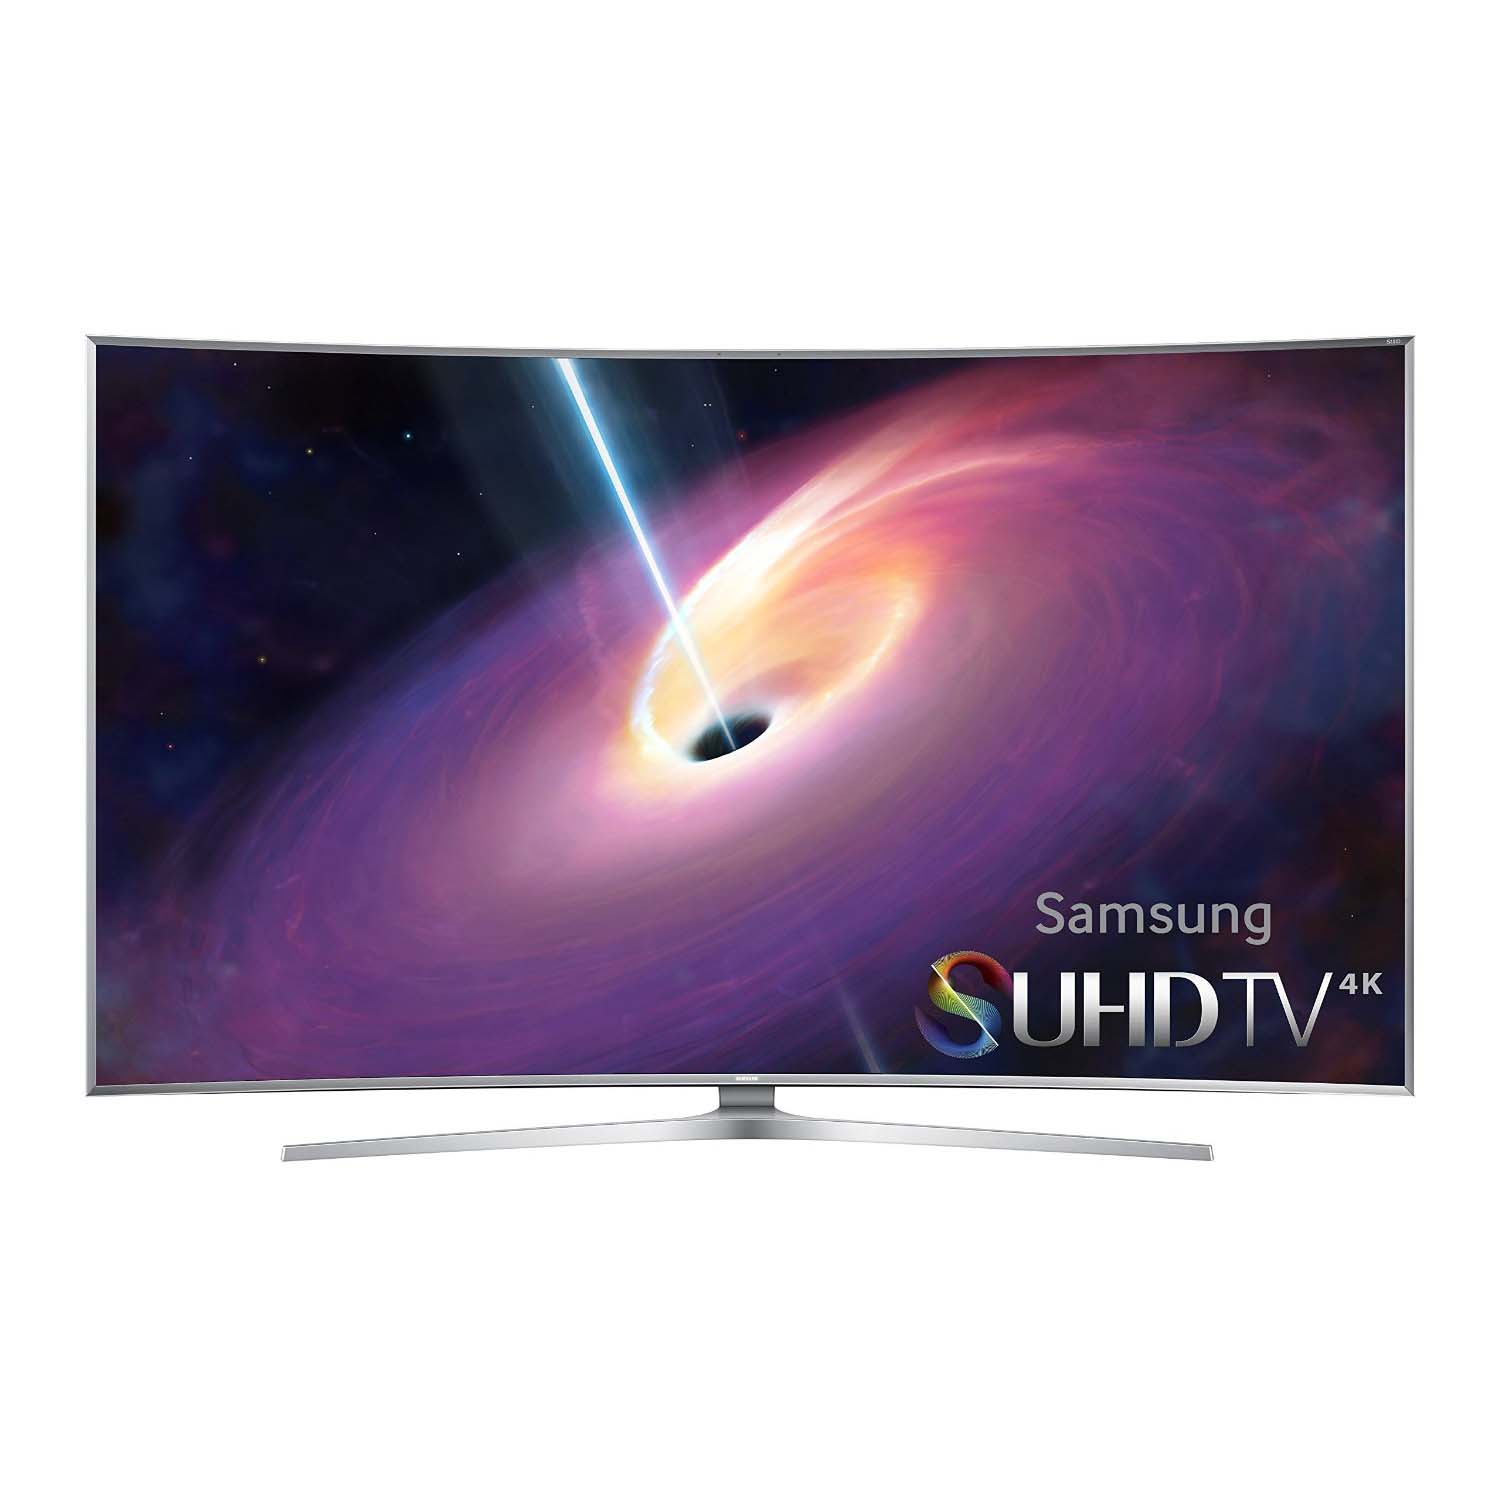 Samsung UN65JS9500 Curved 65-Inch 4K Ultra HD 3D Smart LED TV (2015 Model) *관부가세 별도*